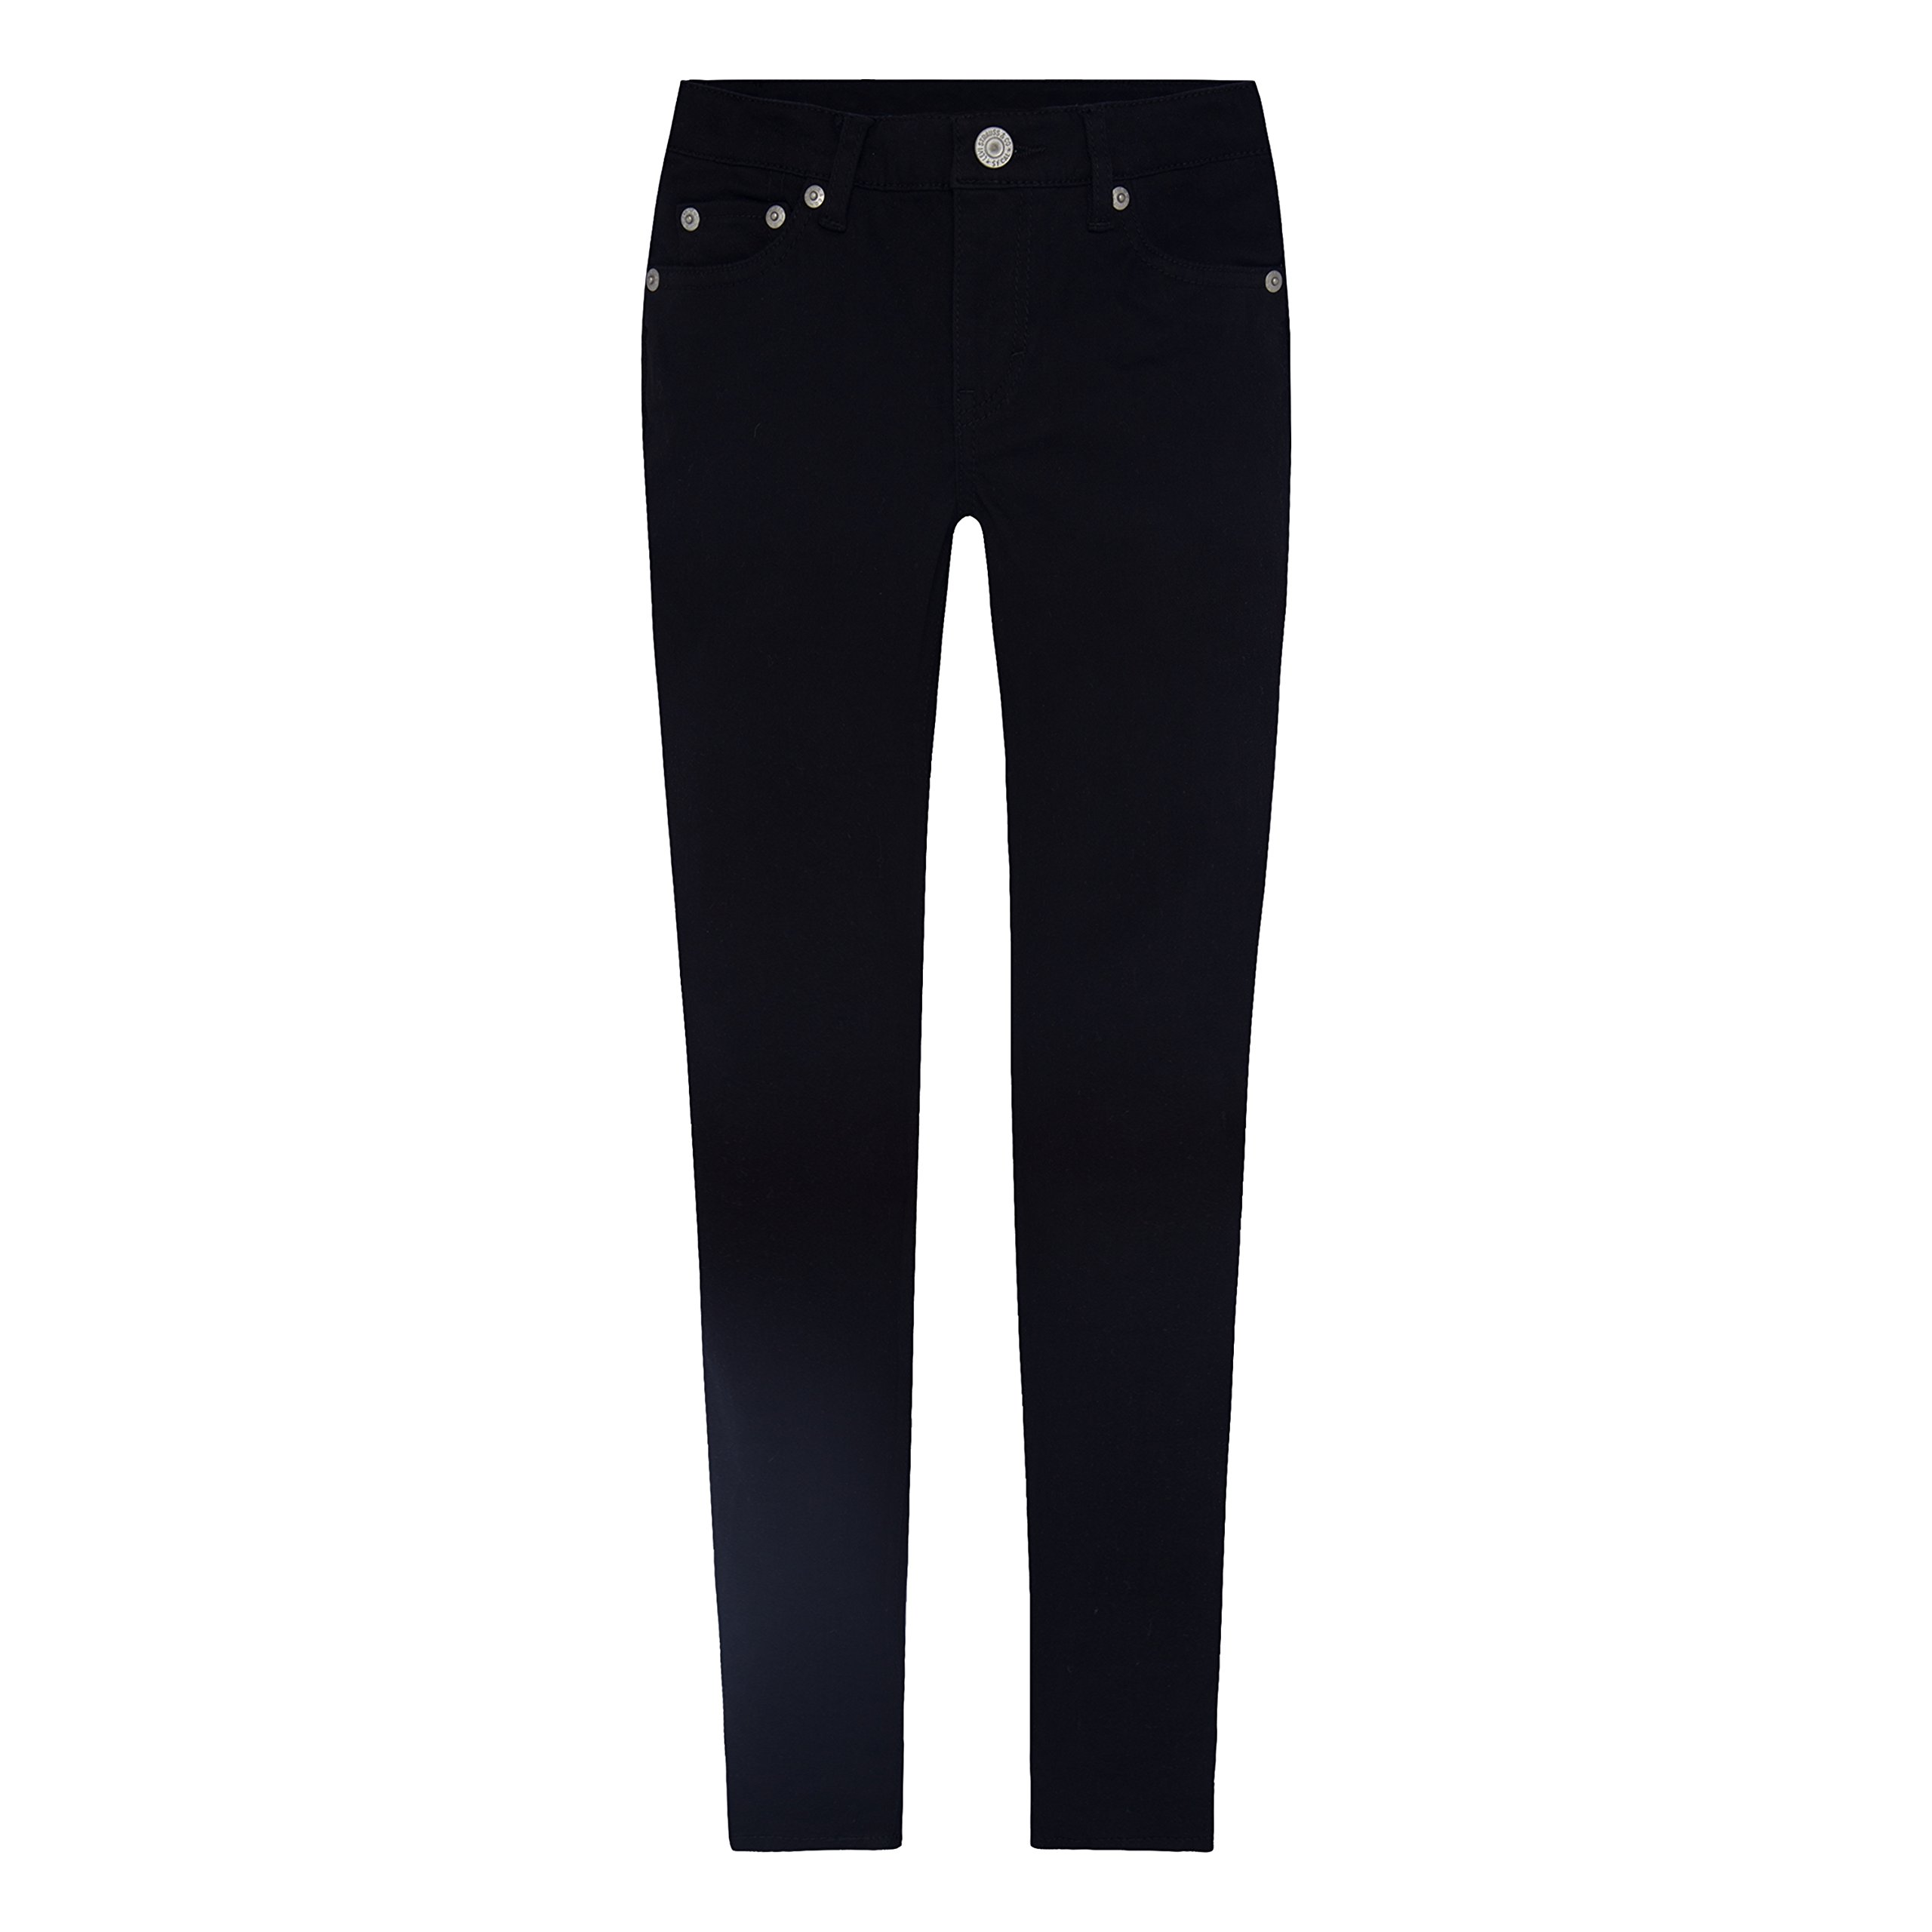 Levi's Girls' 710 Super Skinny Fit Soft Brushed Jeans, Black, 4 by Levi's